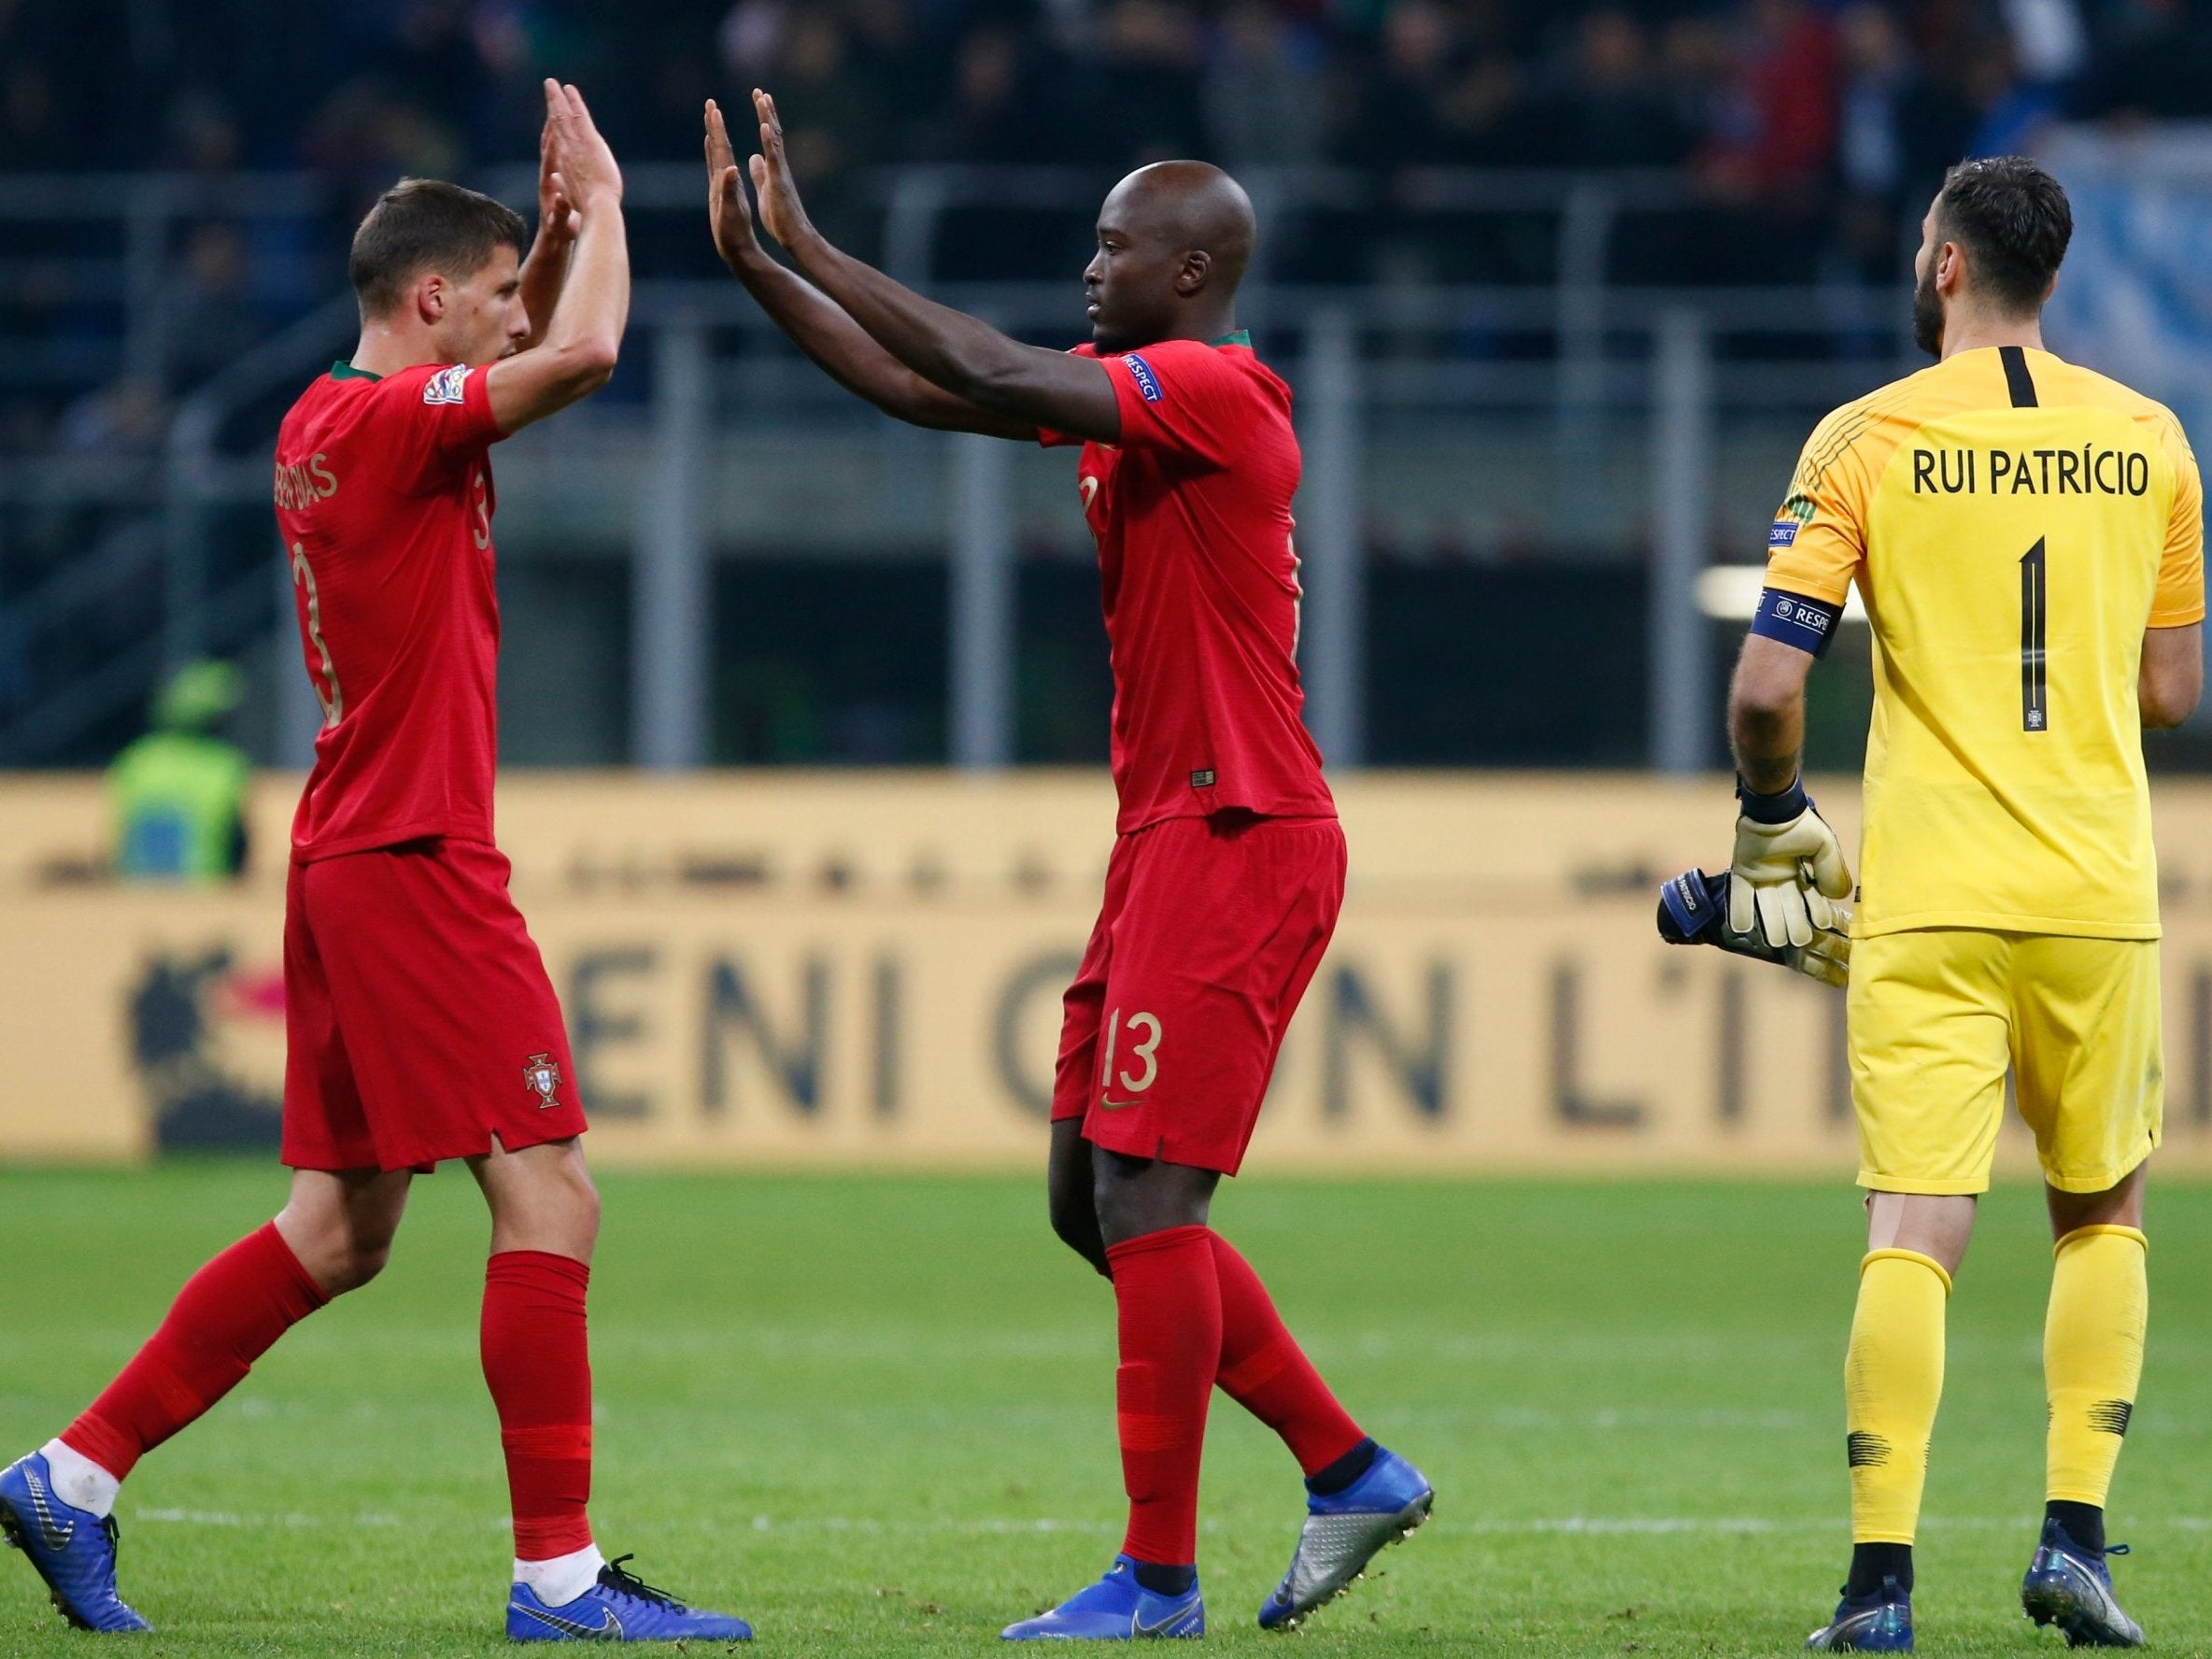 Portugal advance to Nations League semi-finals after holding Italy to lacklustre draw